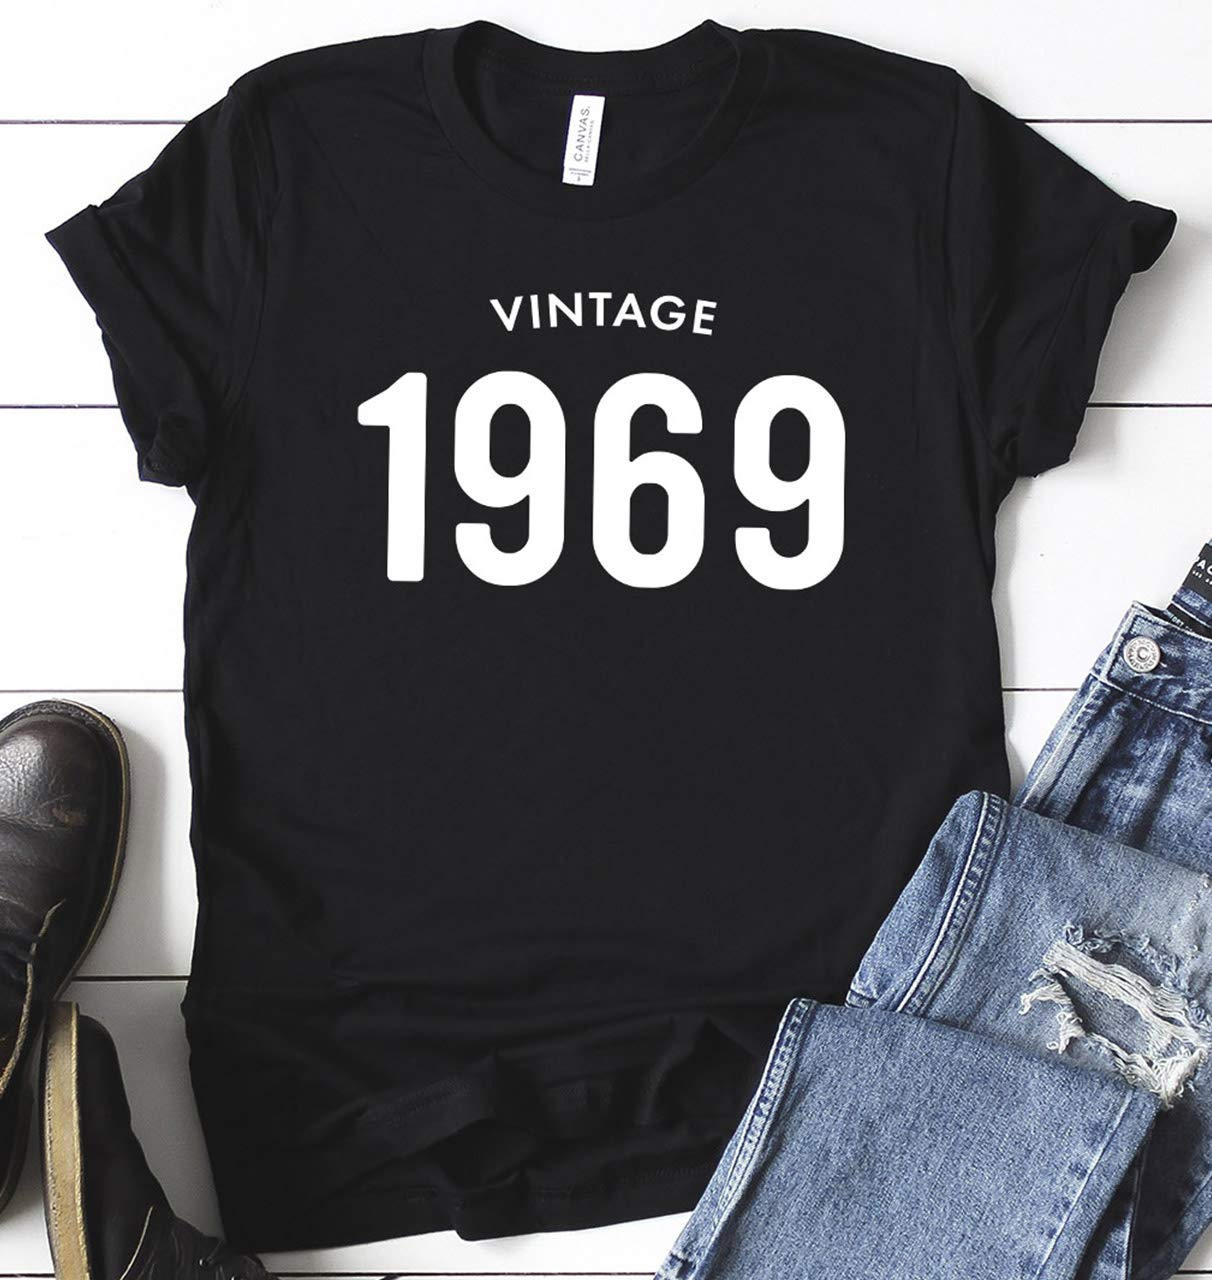 50th Birthday Shirt Vintage 1969 T Gifts For Men Him Unisex 50 Party Dad Graphic Tees Short Sleeve Jersey Personalized Gift